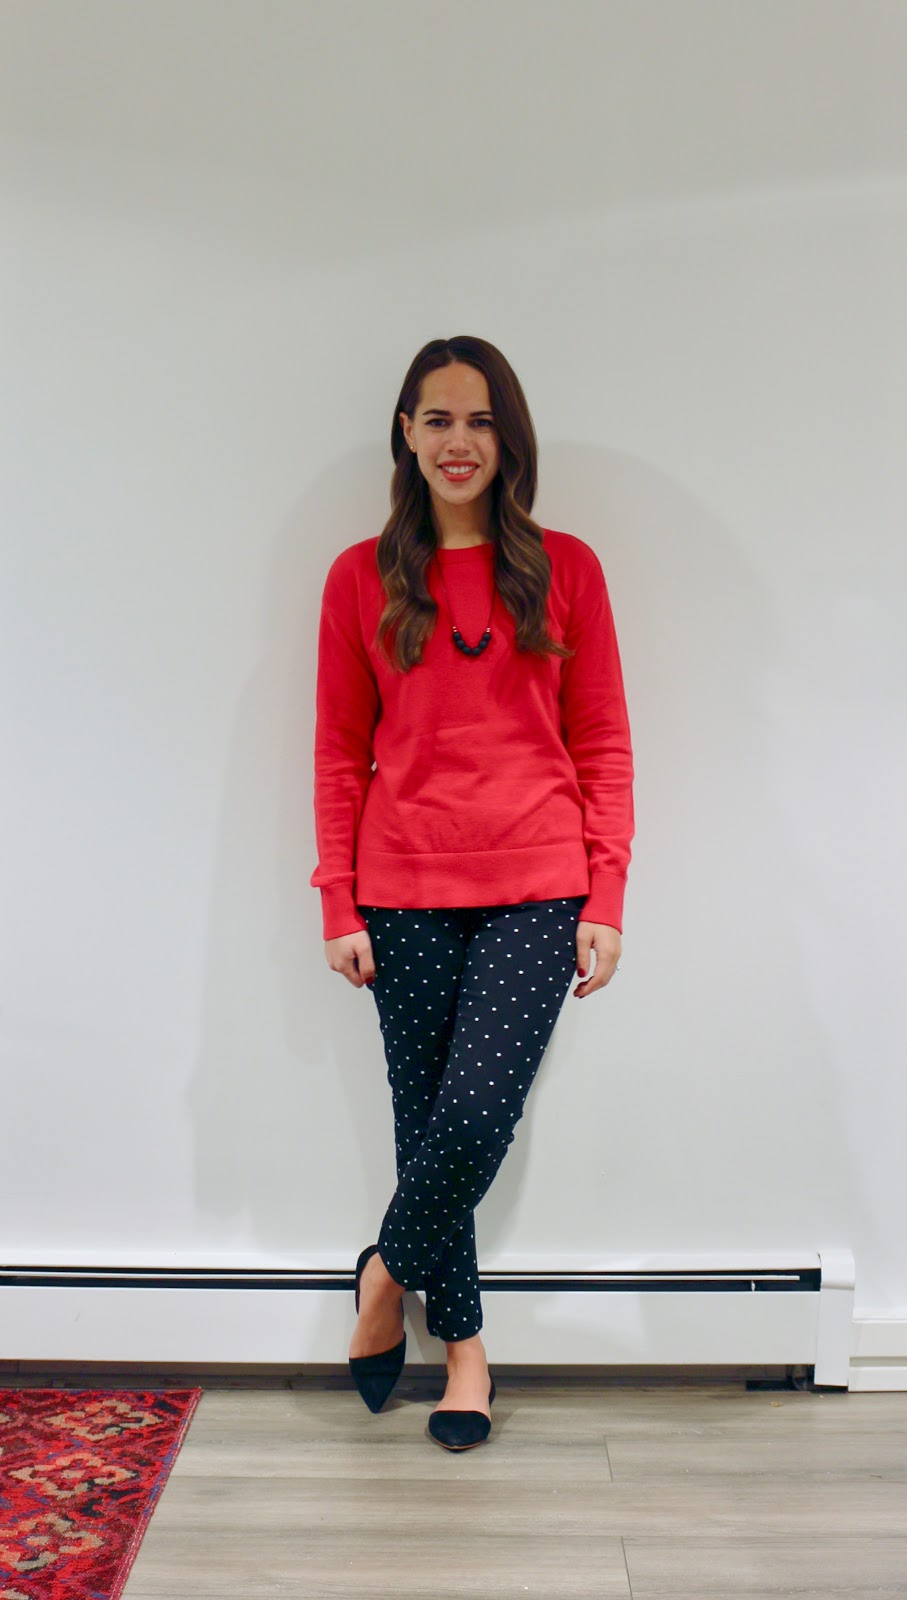 Jules in Flats - Gap Red Sweater with High Rise Skinny Ankle Pants in Polka Dot (Business Casual Fall Workwear on a Budget)